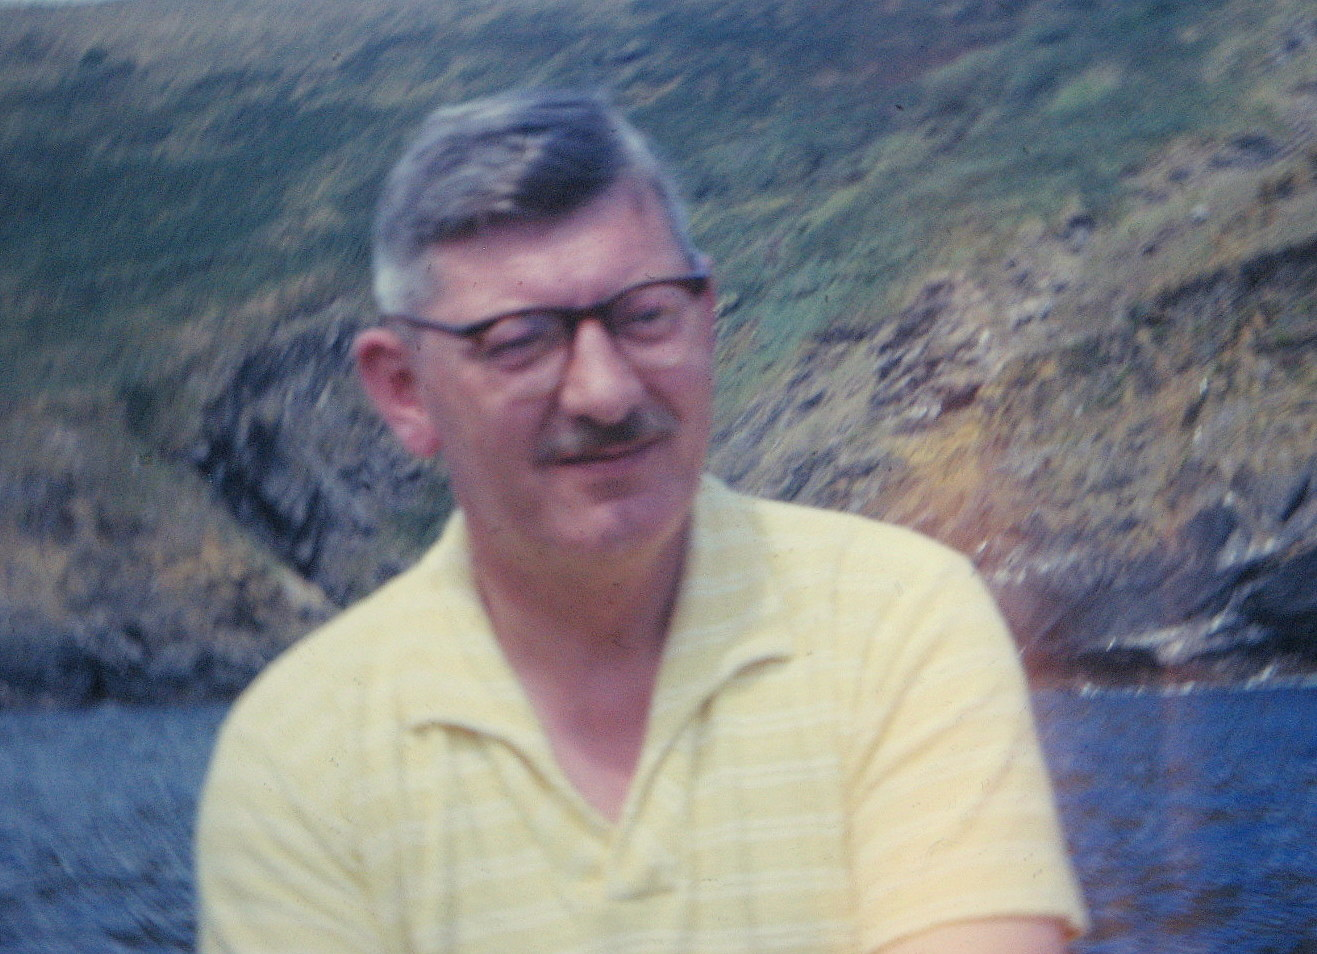 The only picture I have of my father on my system.  He would have been in his 40s when it was taken.